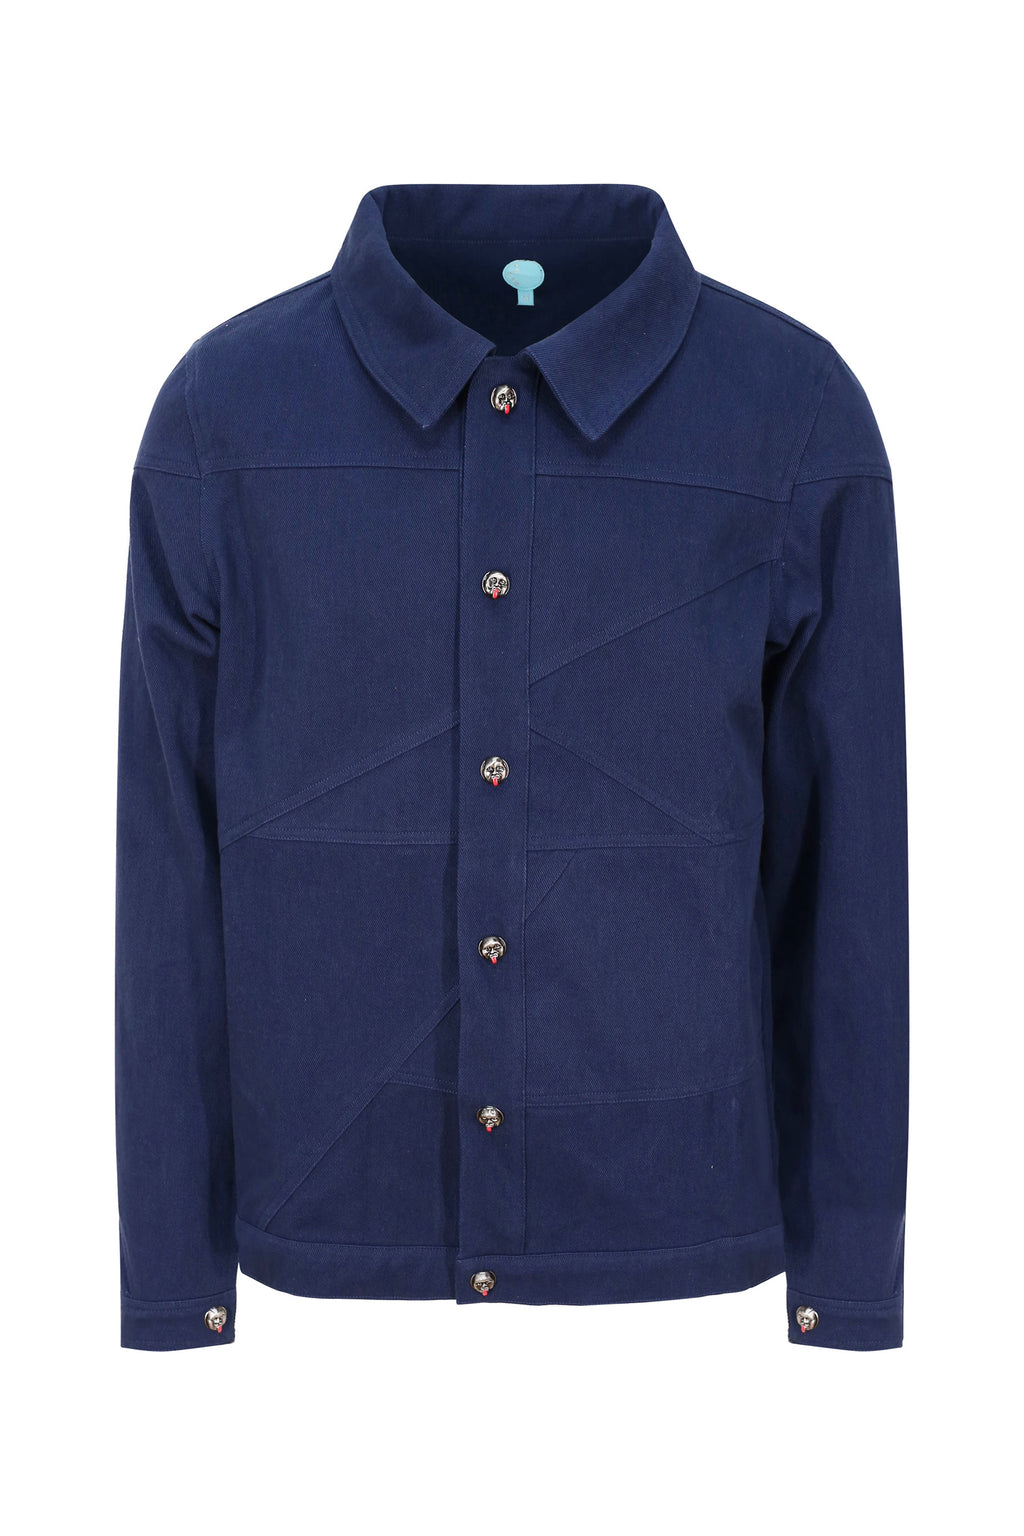 Adrian Unisex Dark Blue Denim Jacket